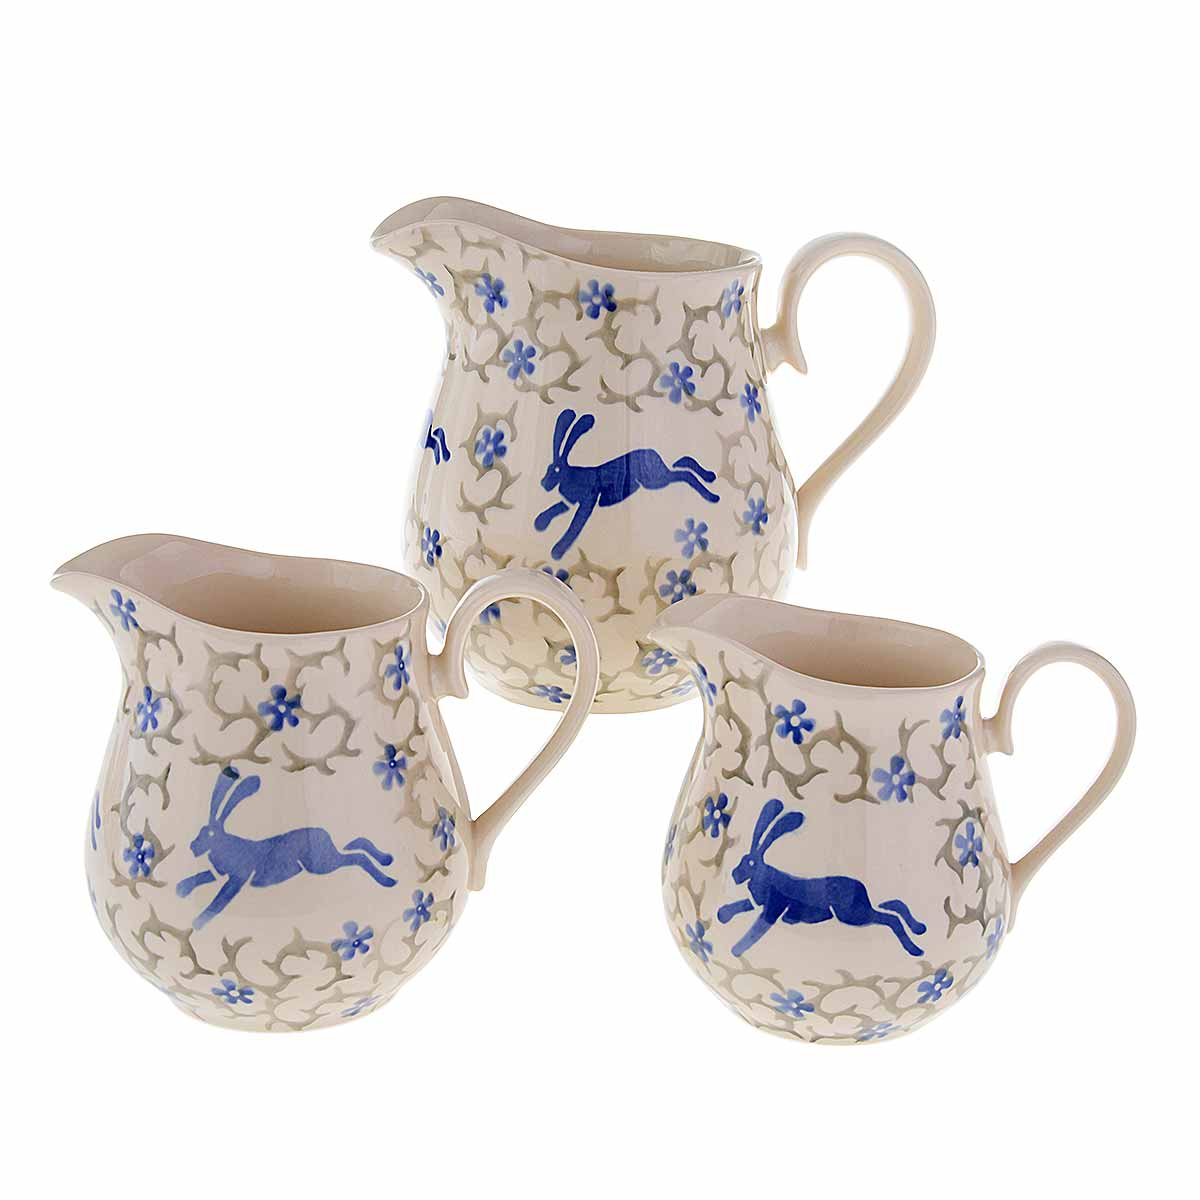 jugs on white background